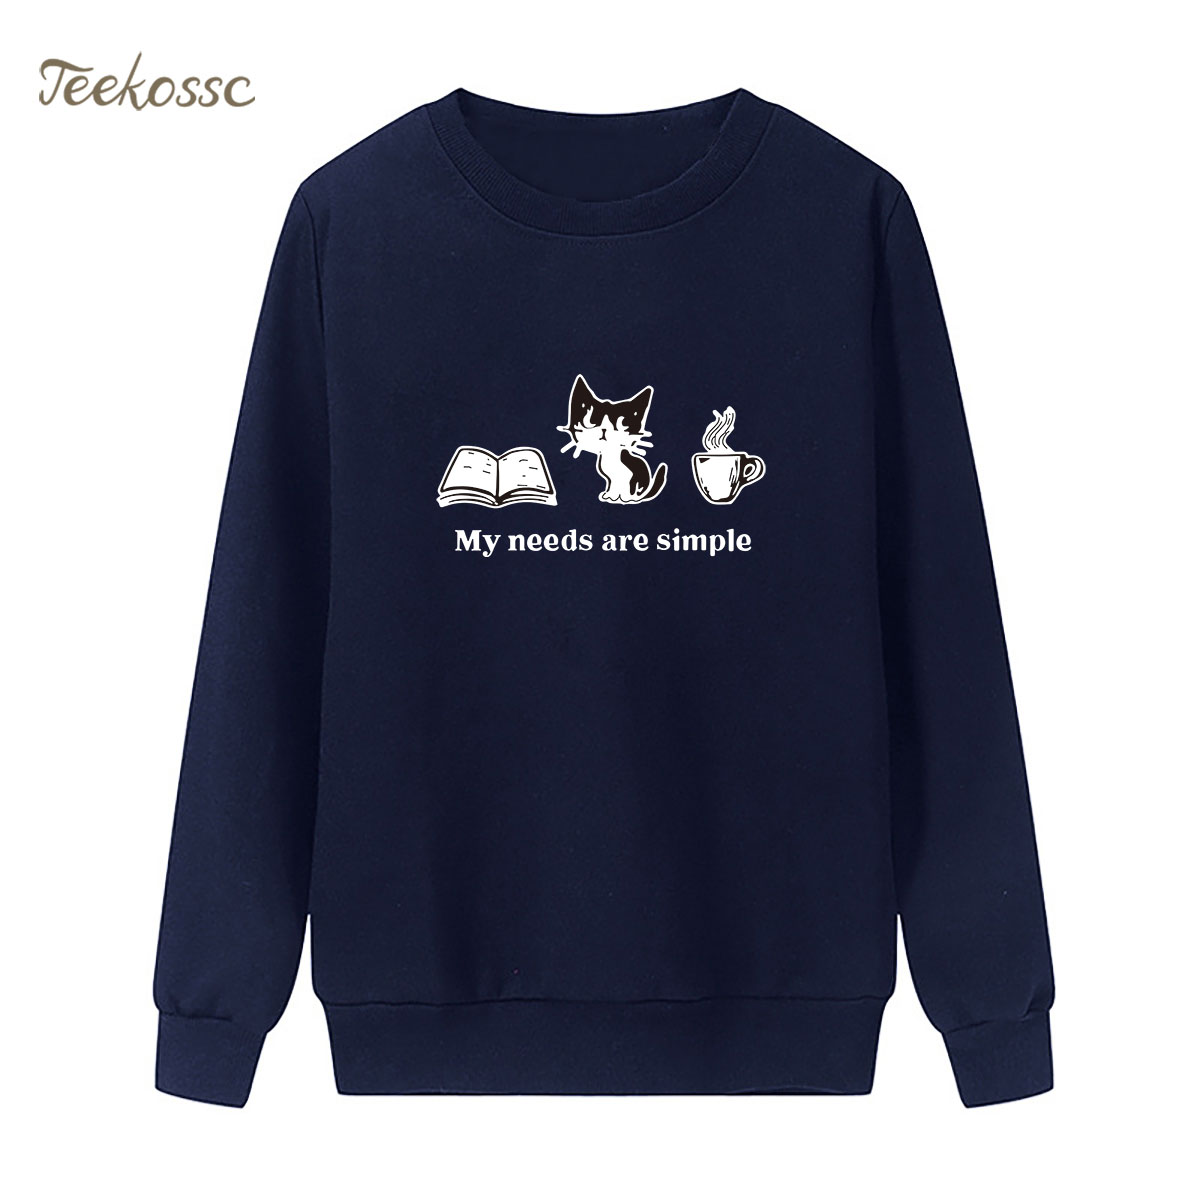 My needs are simple Sweatshirt Book Cat Coffe Hoodie 2018 Winter Autumn Women Lasdies Pullover Fleece Loose Hipster Streetwear